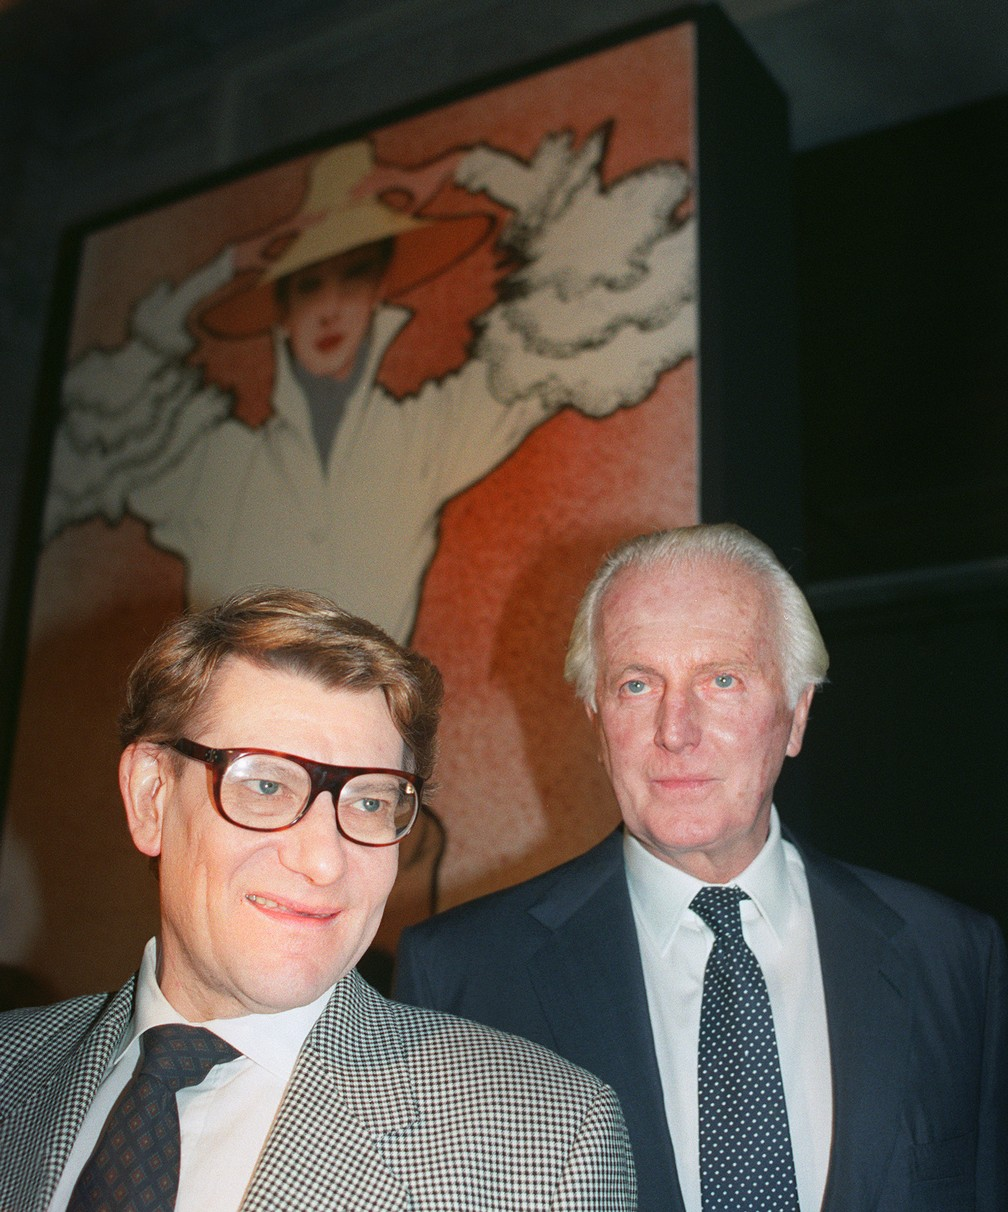 Givenchy com Yves Saint-Laurent durante encontro na Galliera Museum, em 1991 (Foto: PIERRE GUILLAUD / AFP)